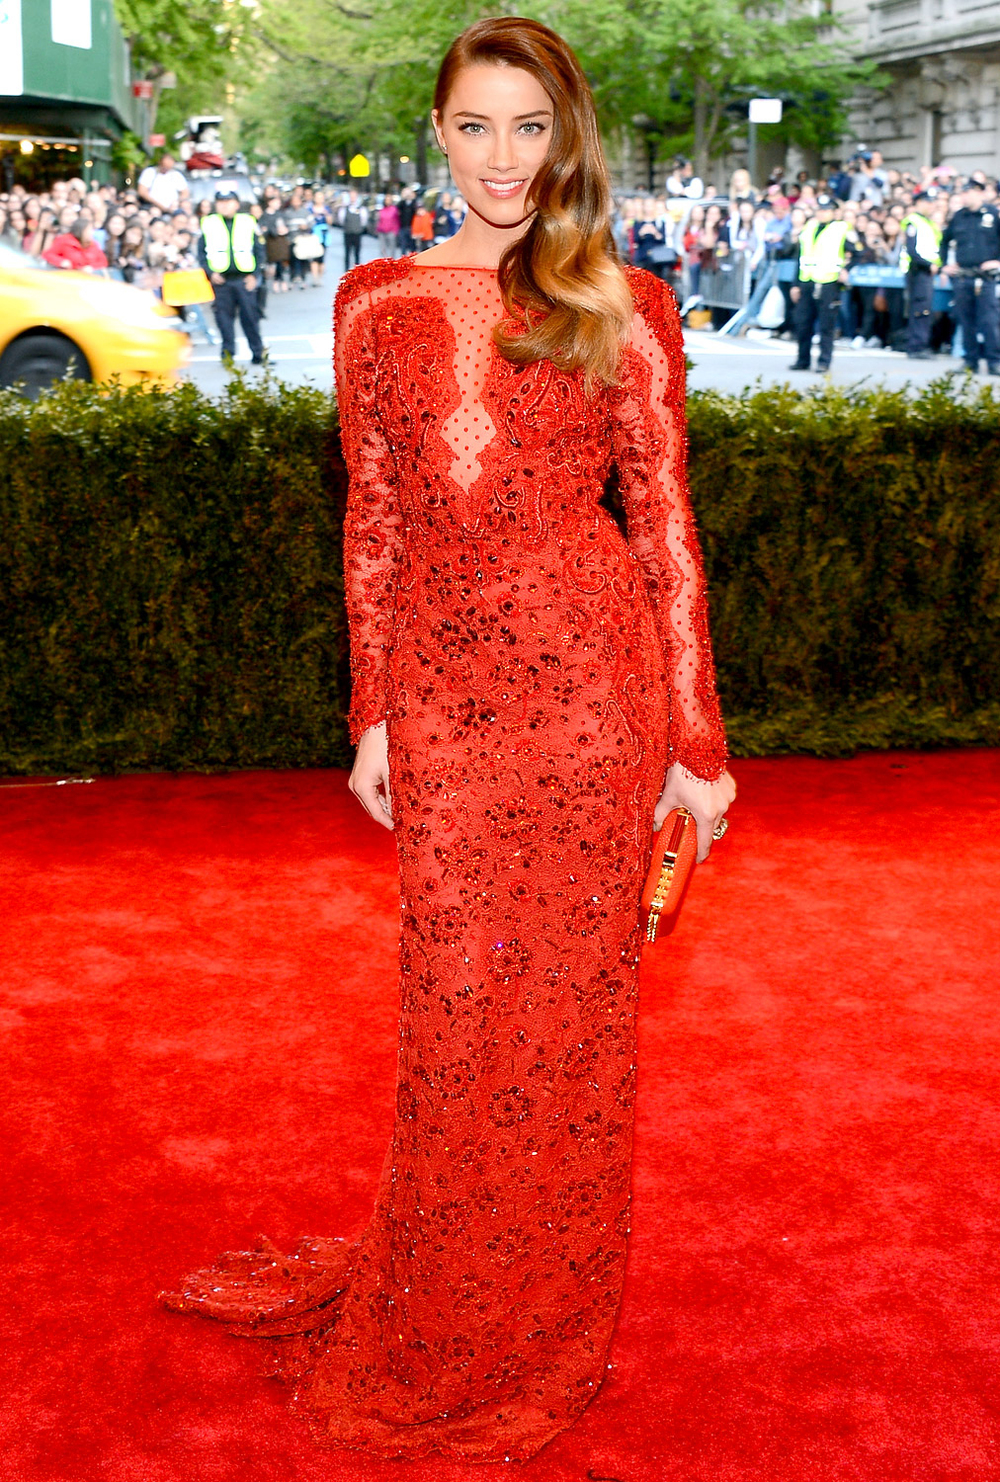 2013 Met Gala:Amber Heardtook to the red carpet in a bright red laceEmilio Puccigown. The actress was the guest of Peter Dundas who custom designed the dress especially for her.